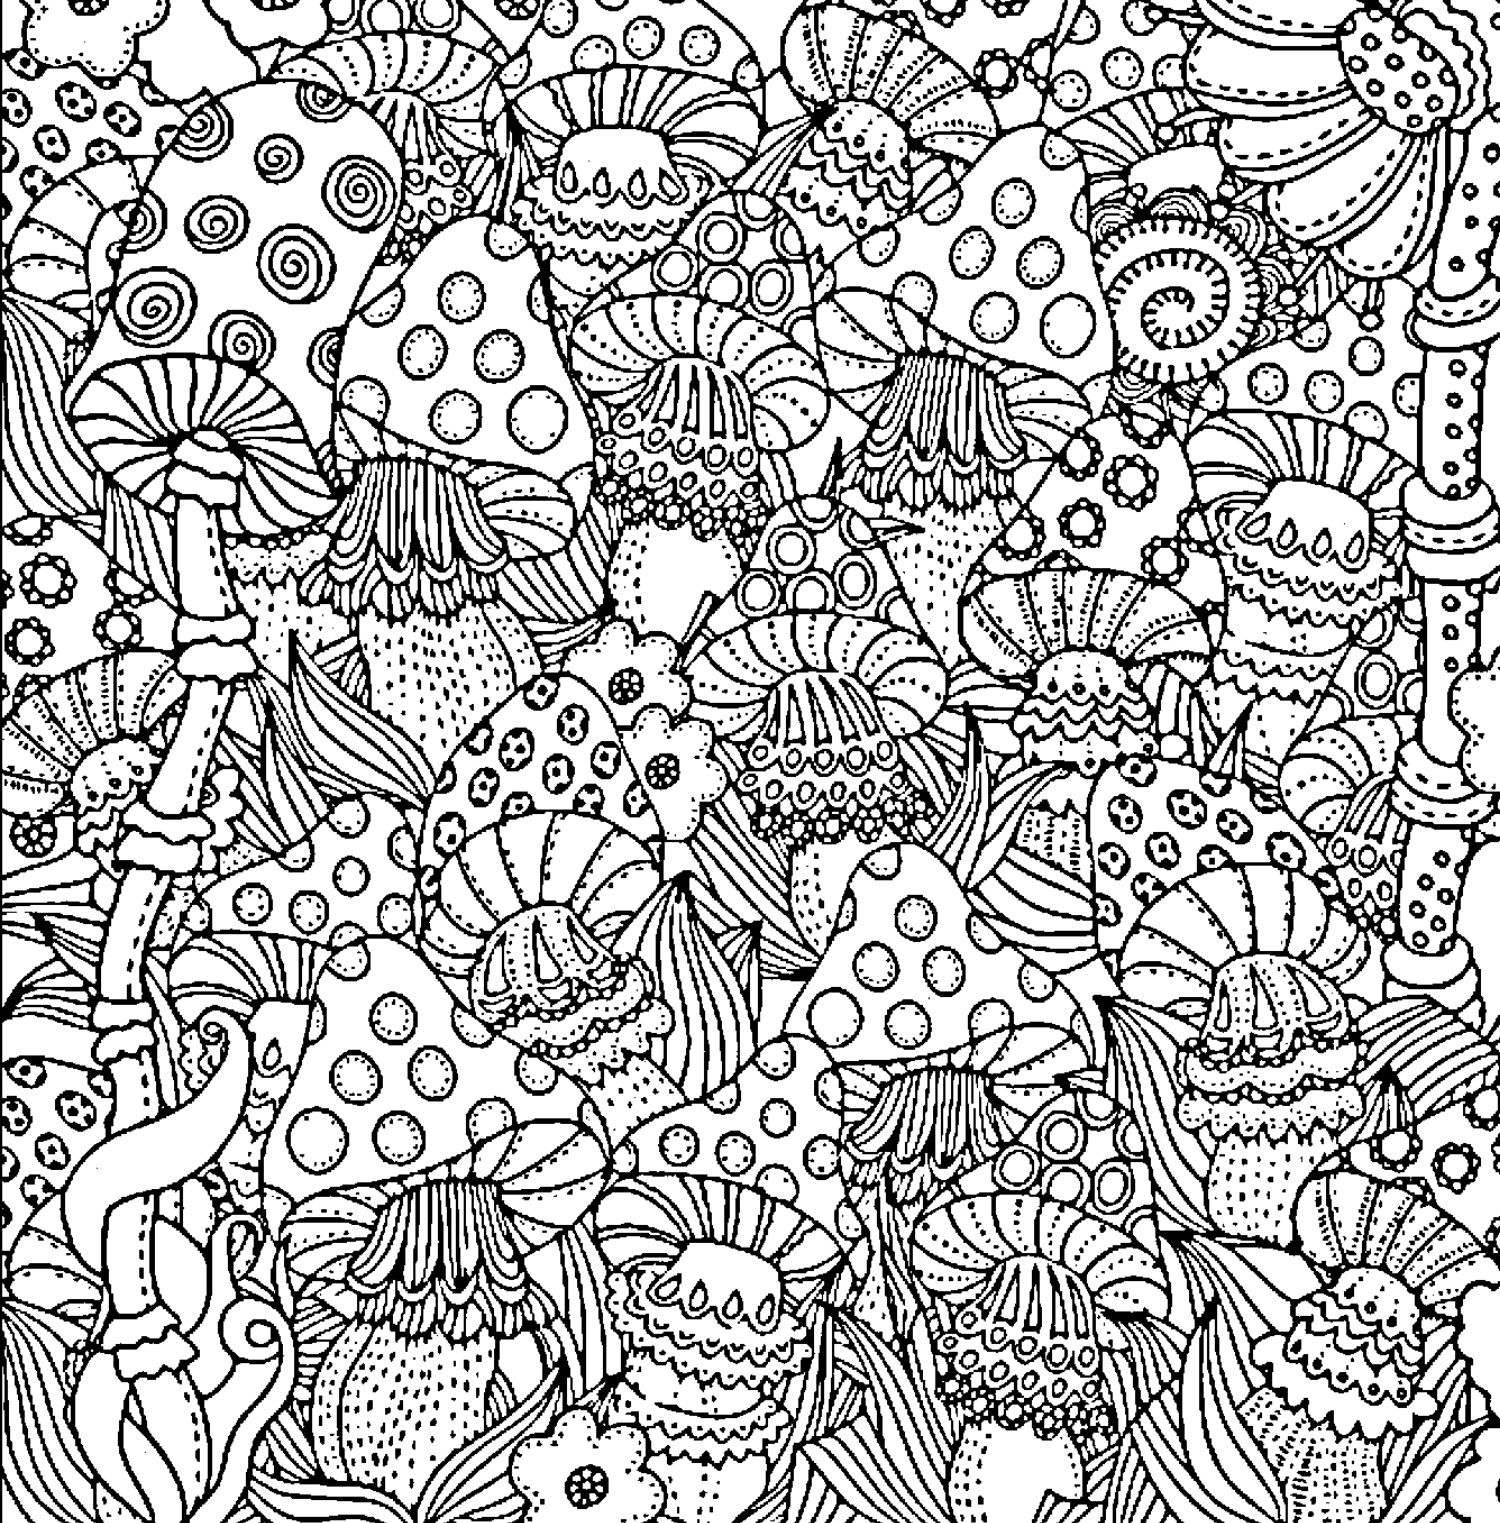 Difficult coloring pages for adults